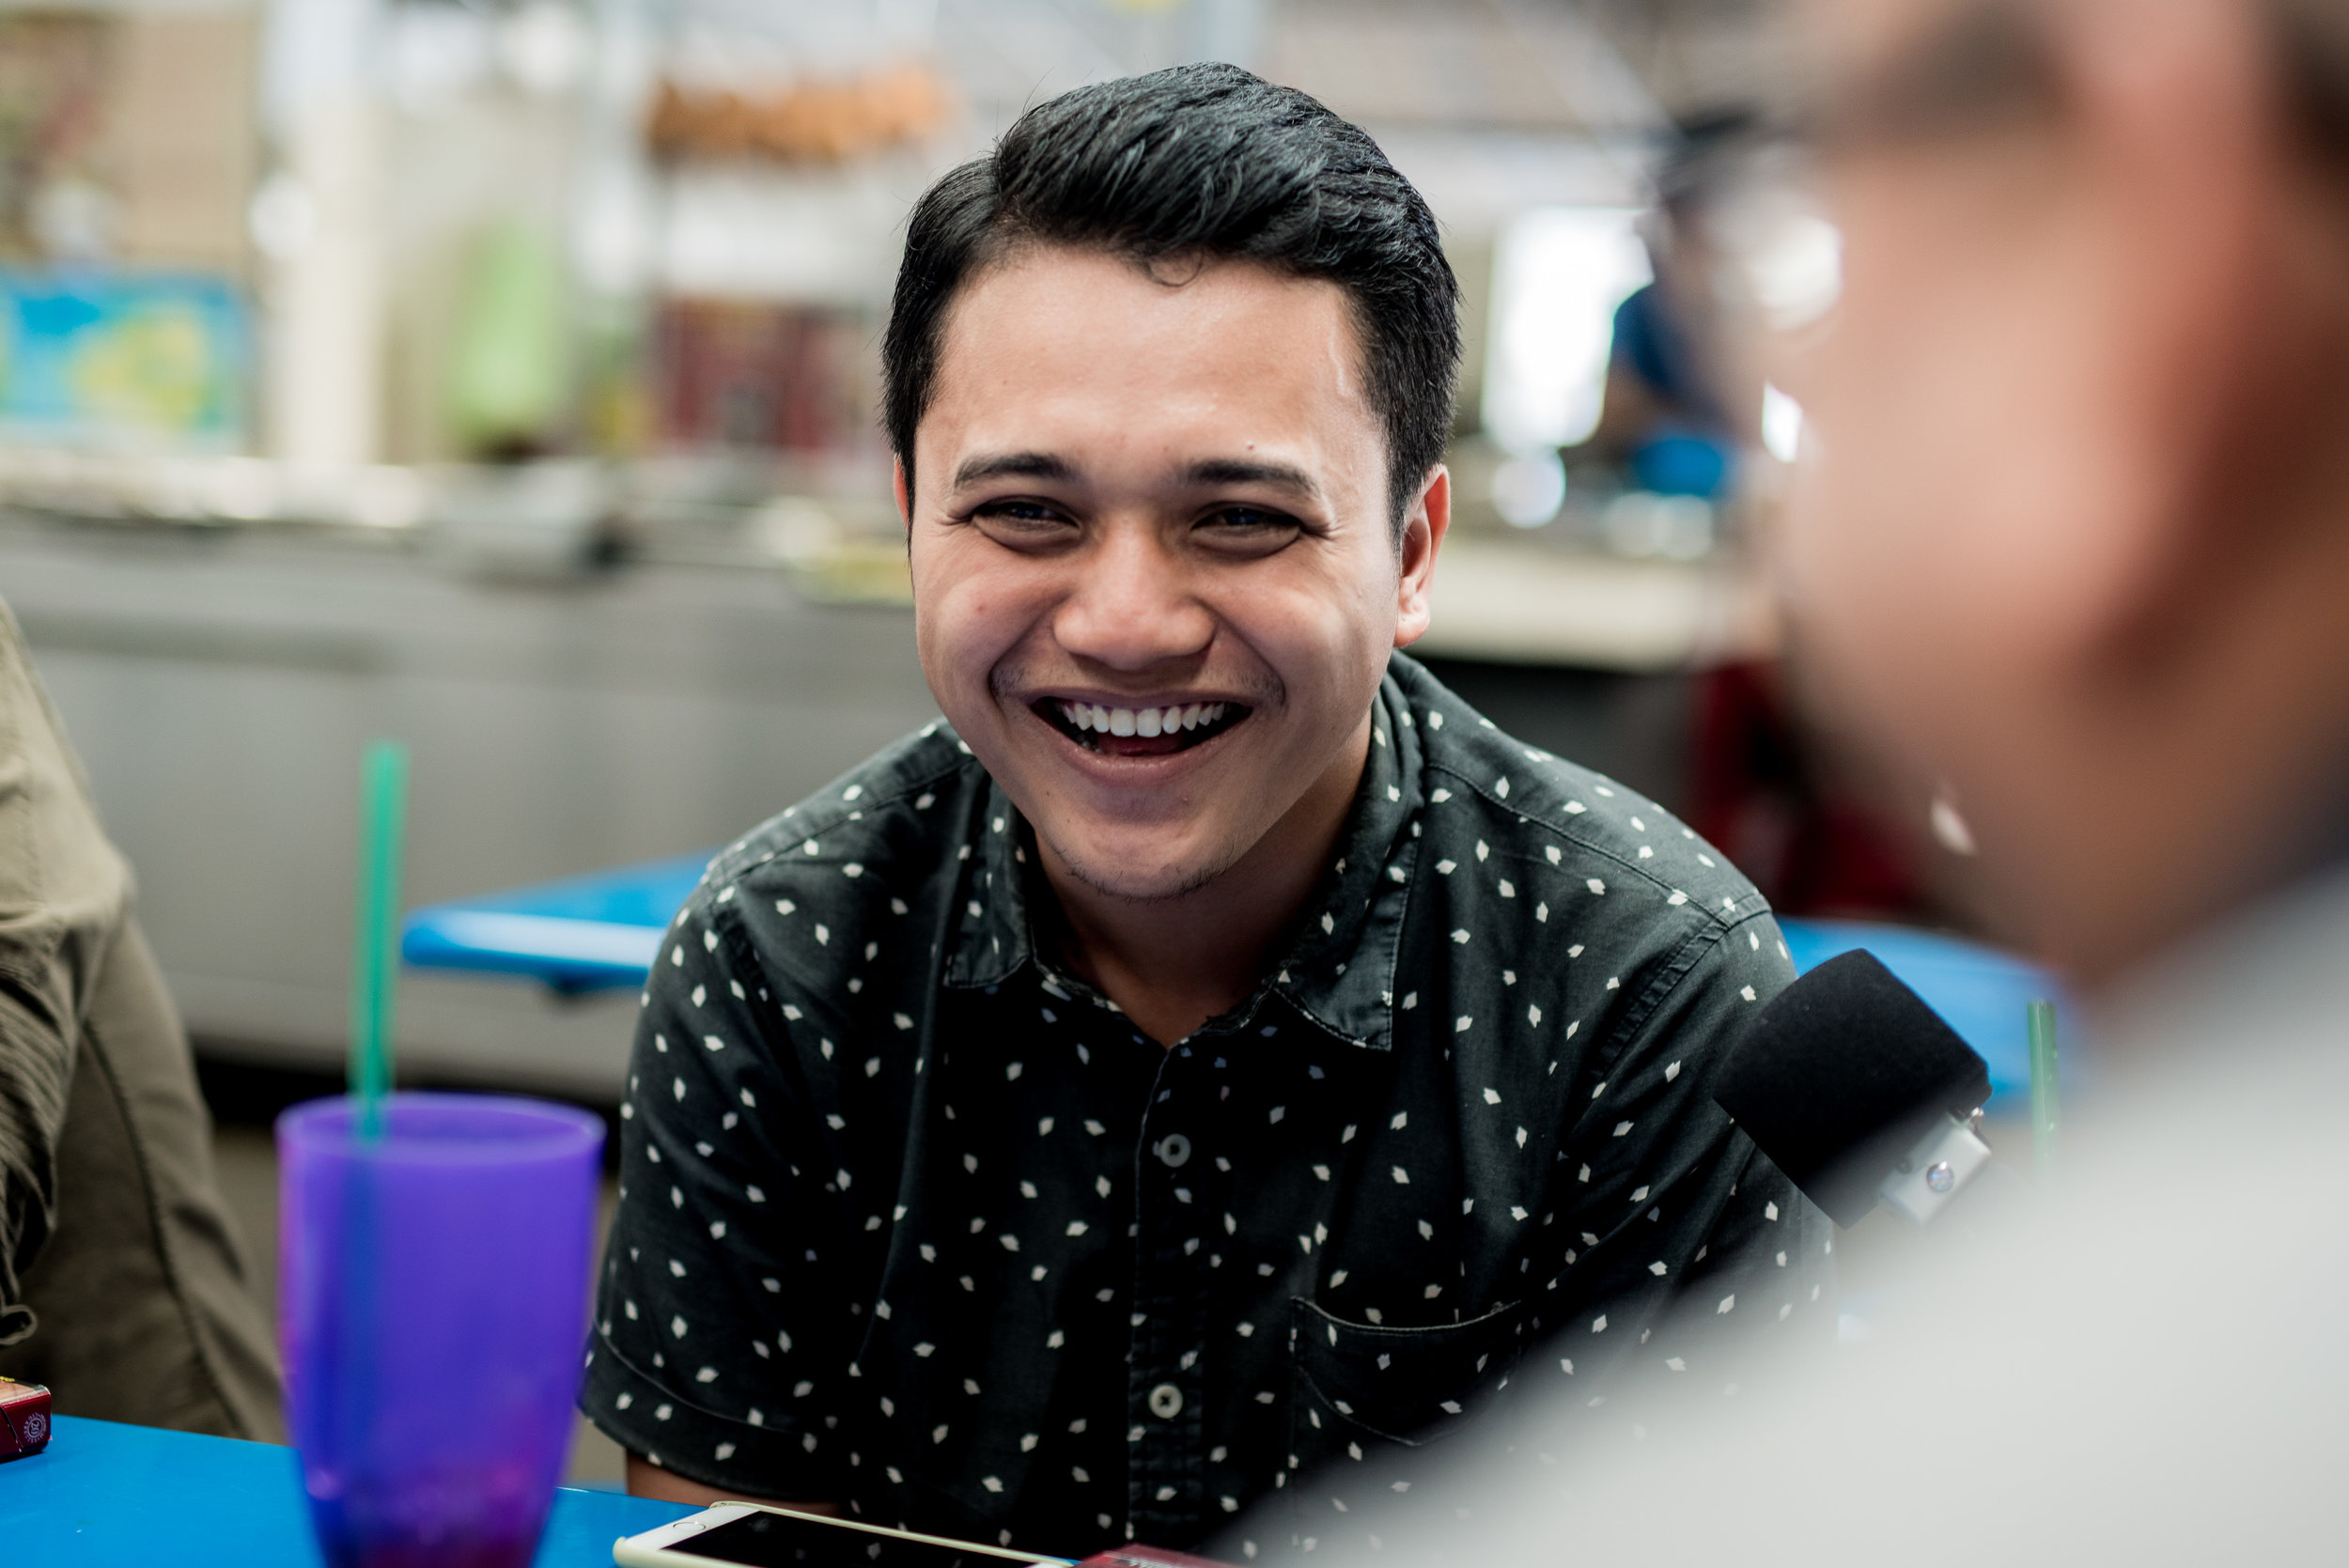 Sime Darby - People of  Subang - BTS - DDY_5732 - Photo by All Is Amazing.jpg